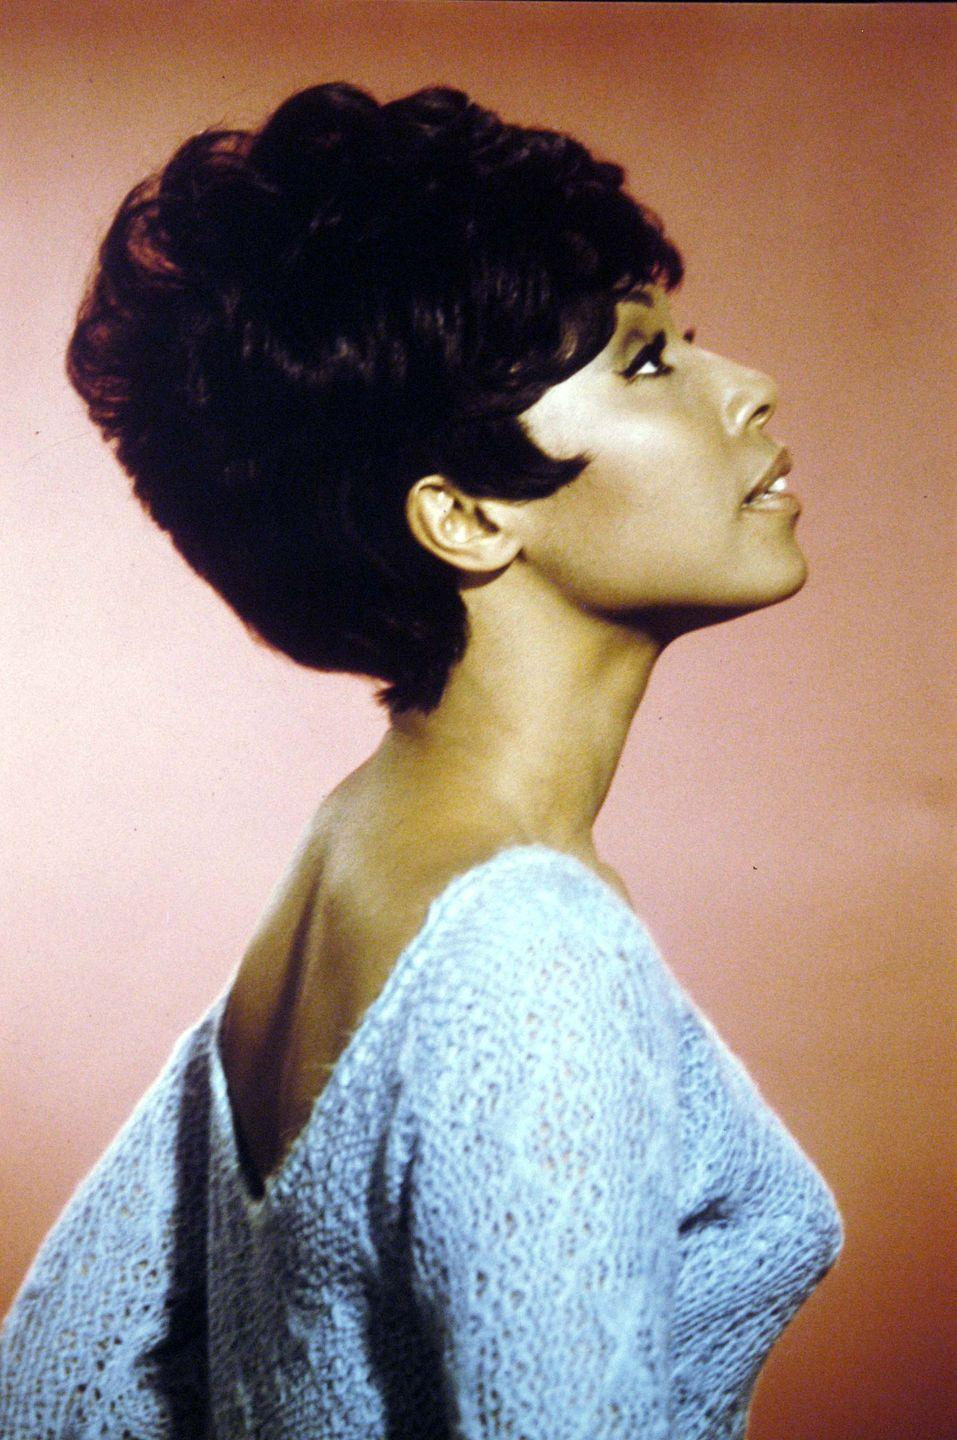 <p>Starring in <em>Julia</em>, a role that made her the first Black actress to have her own TV show, Diahann Carroll helped propel this chic, voluminous style to popularity.</p>